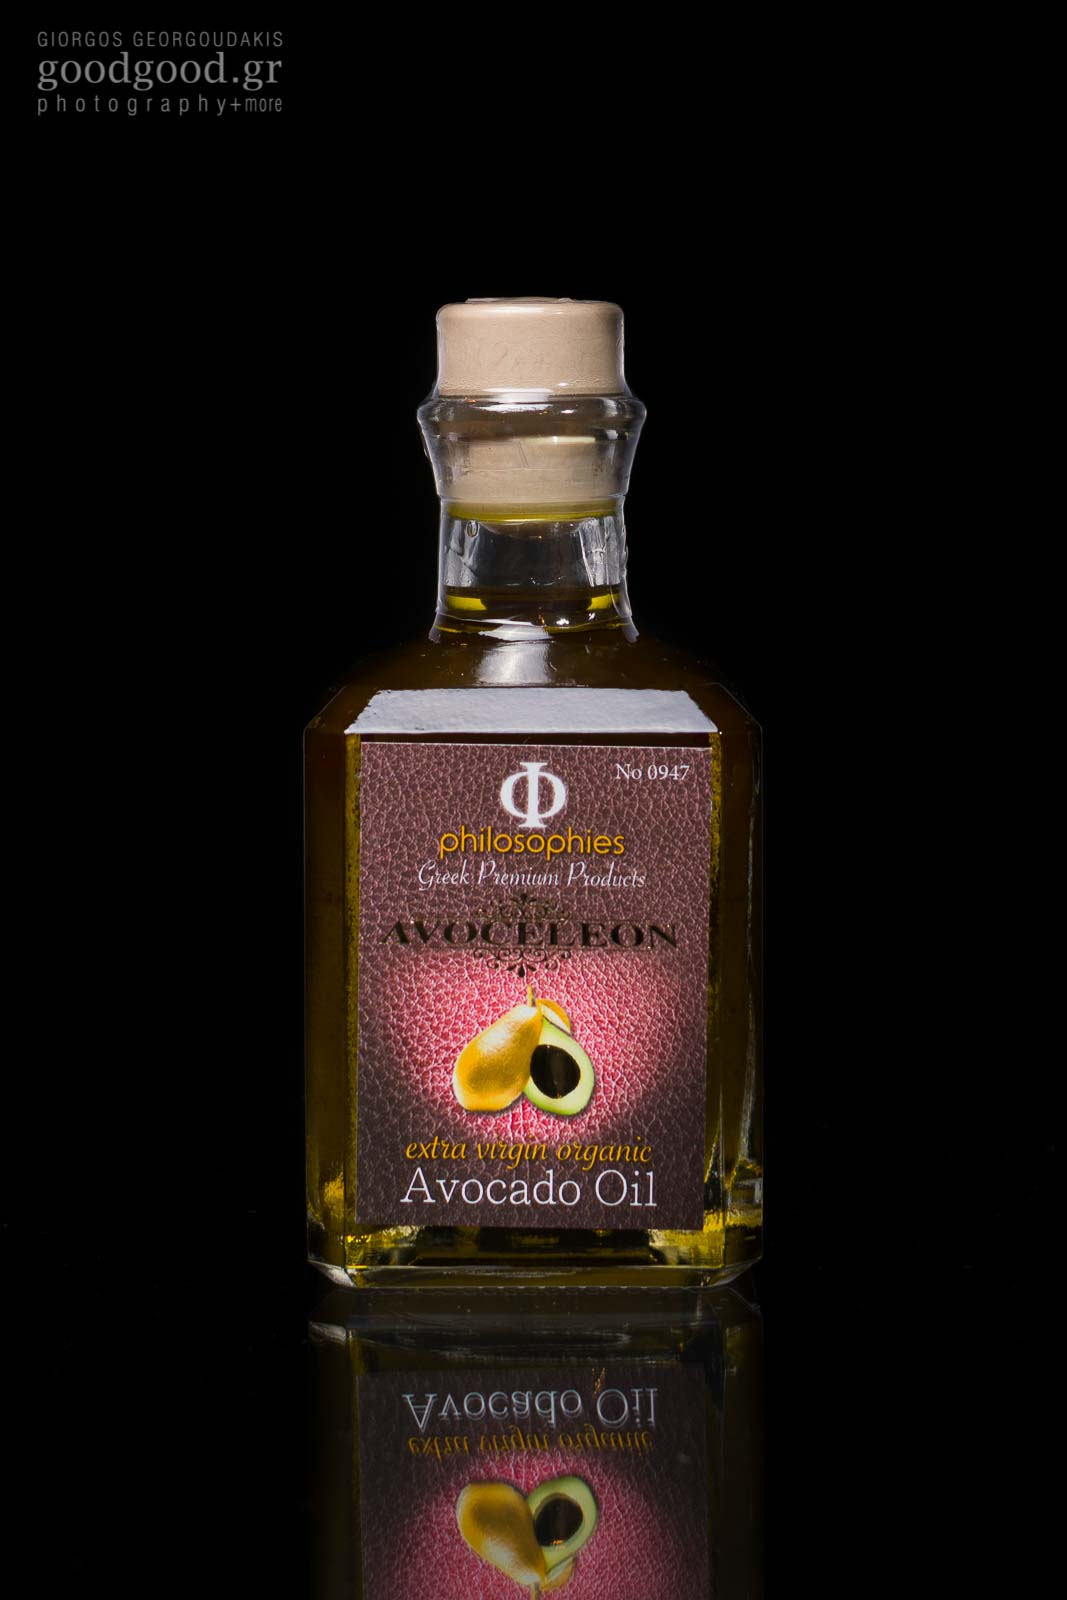 Photograph of a glass bottle of avocado avoceleon oil in dark background